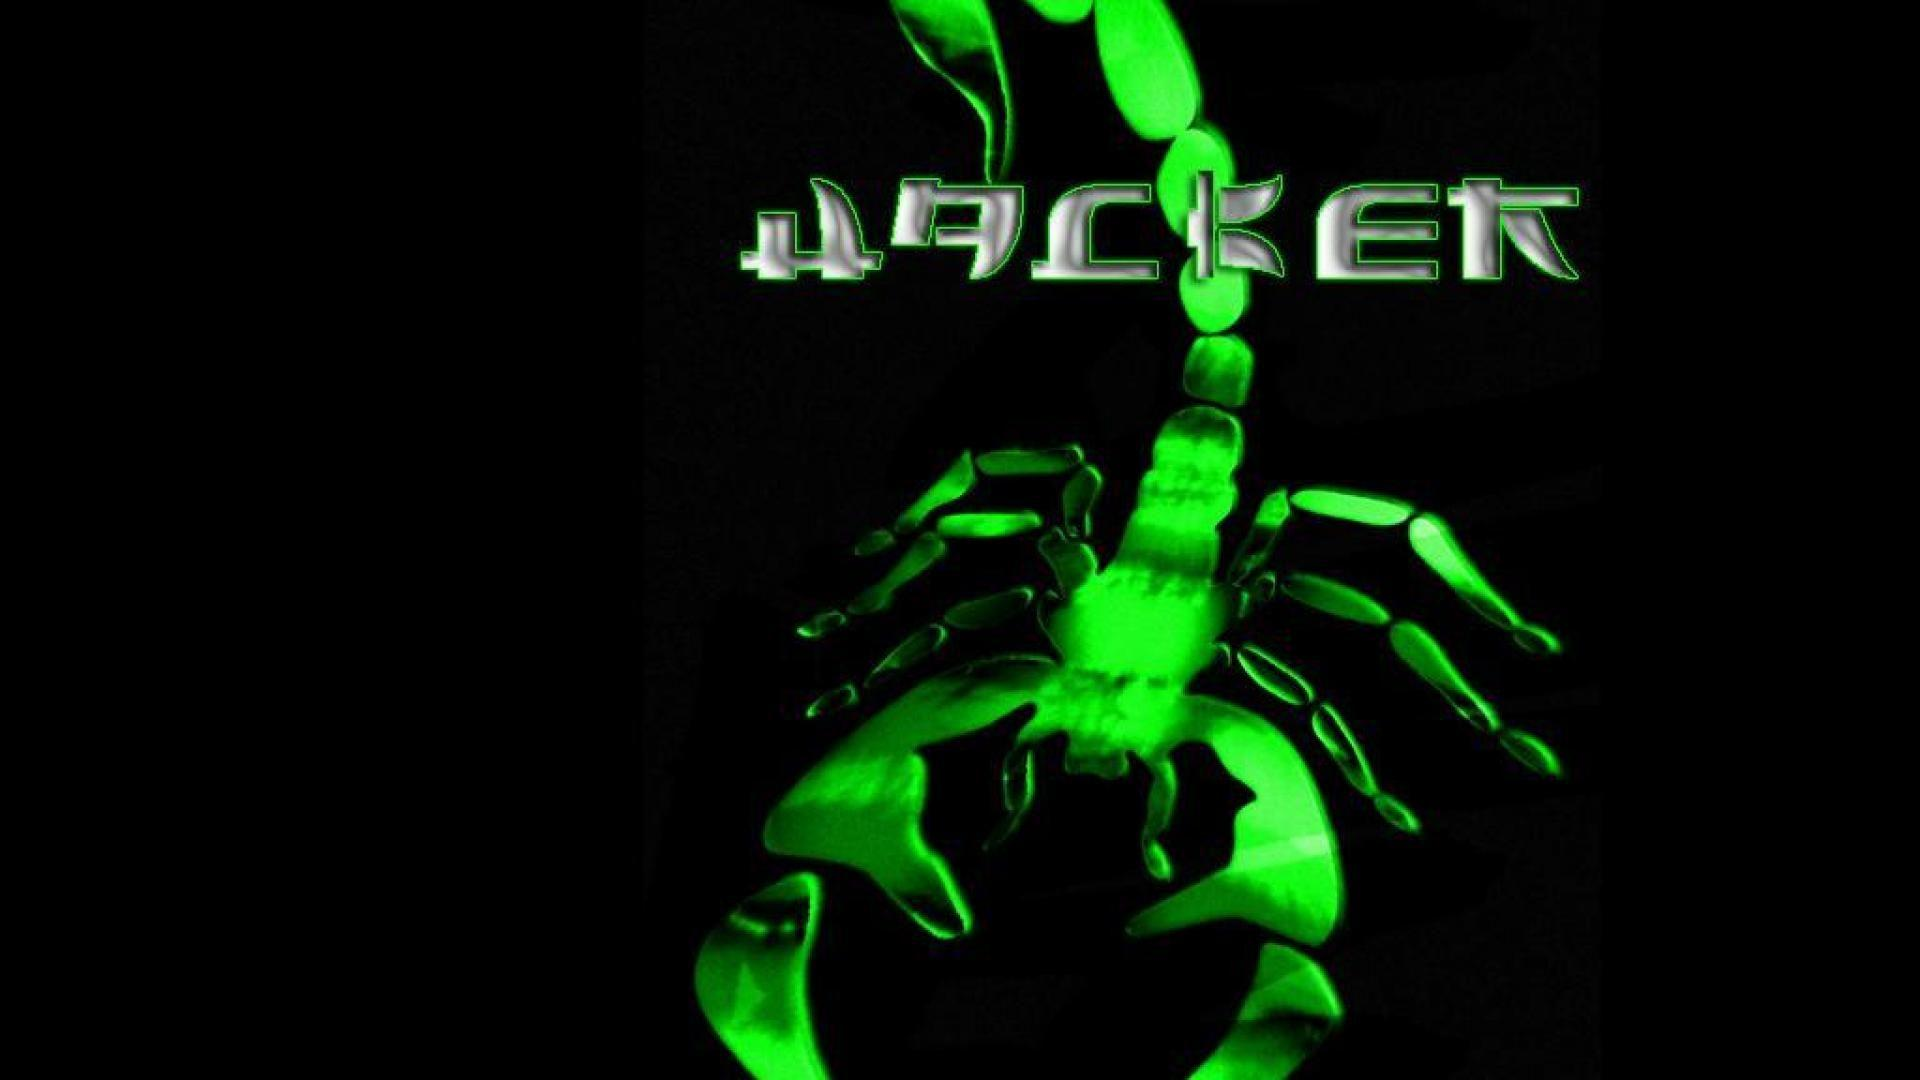 Green Hacker Skull Wallpapers HD - Wallpaper Cave